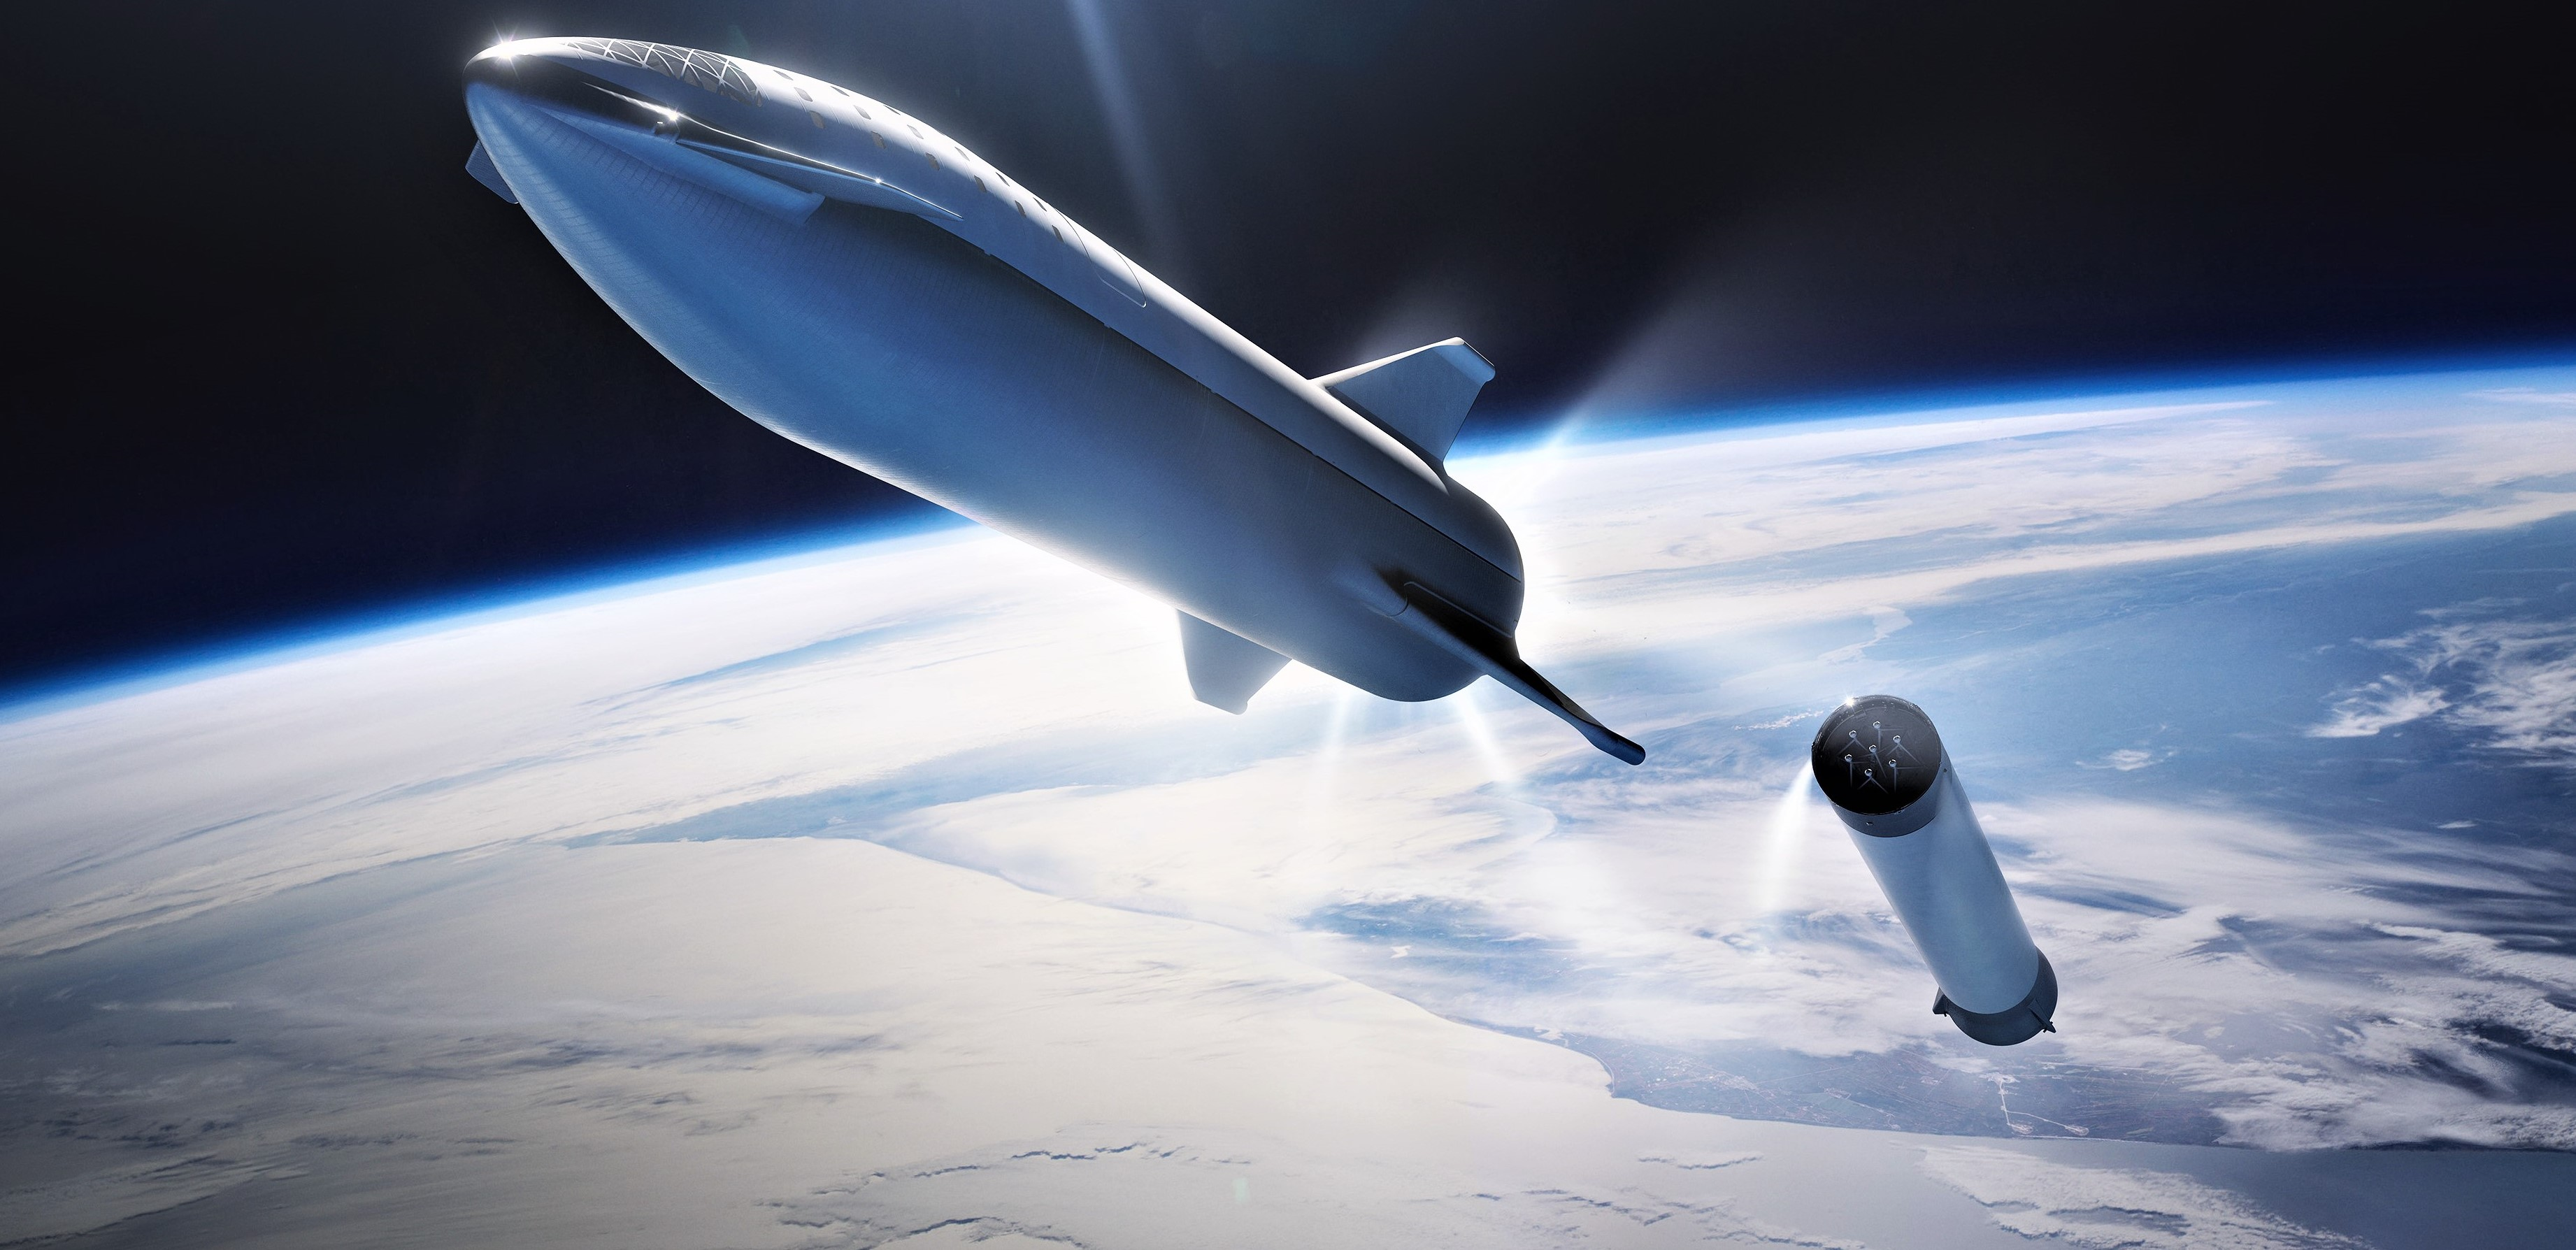 BFR 2018 spaceship and booster sep (SpaceX) 2 crop